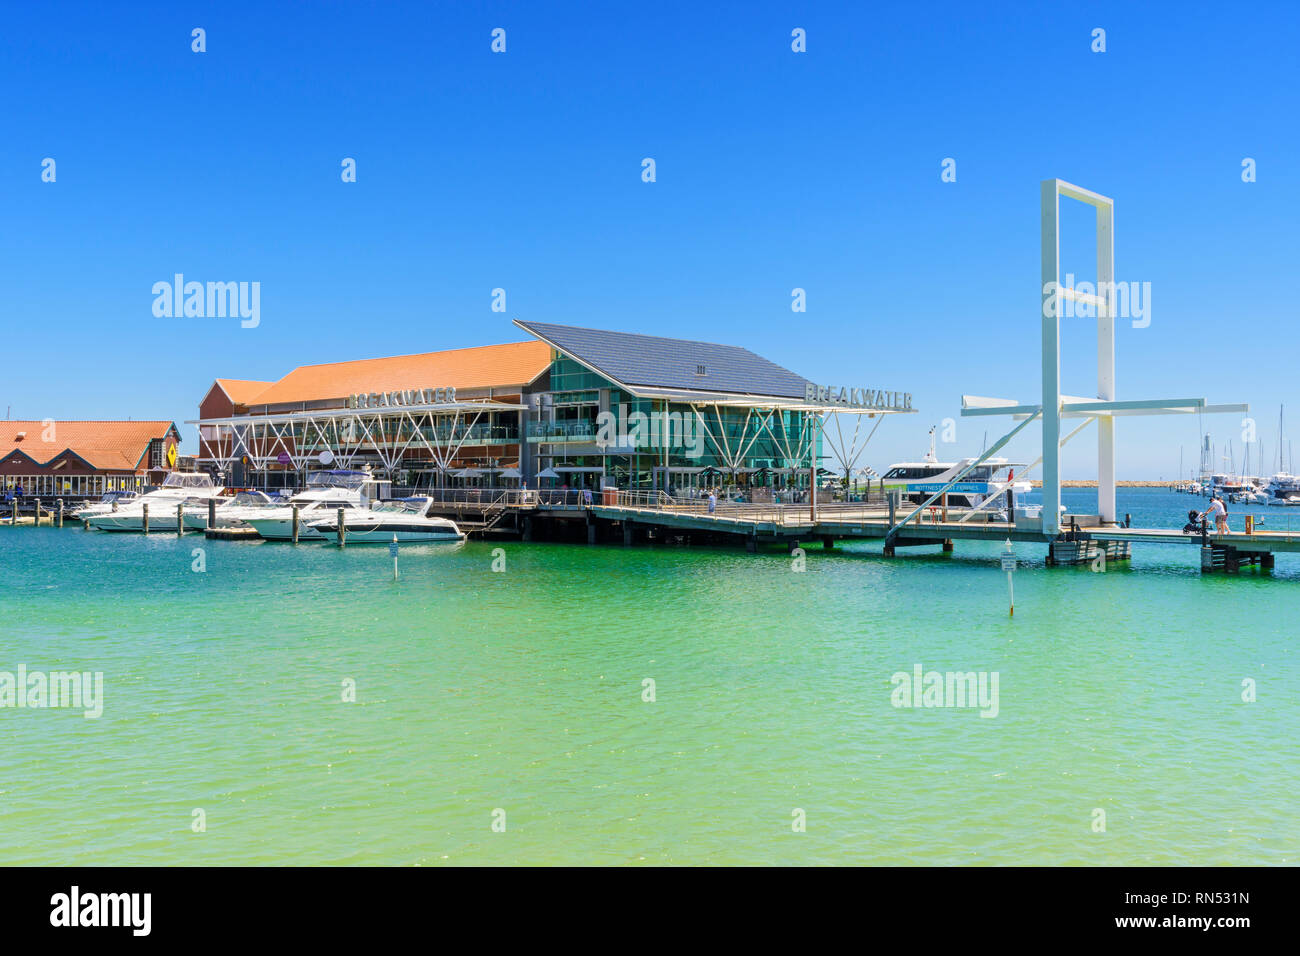 The Breakwater Tavern at Sorrento Quay, Hillarys Boat Harbour, Hillarys, Western Australia - Stock Image